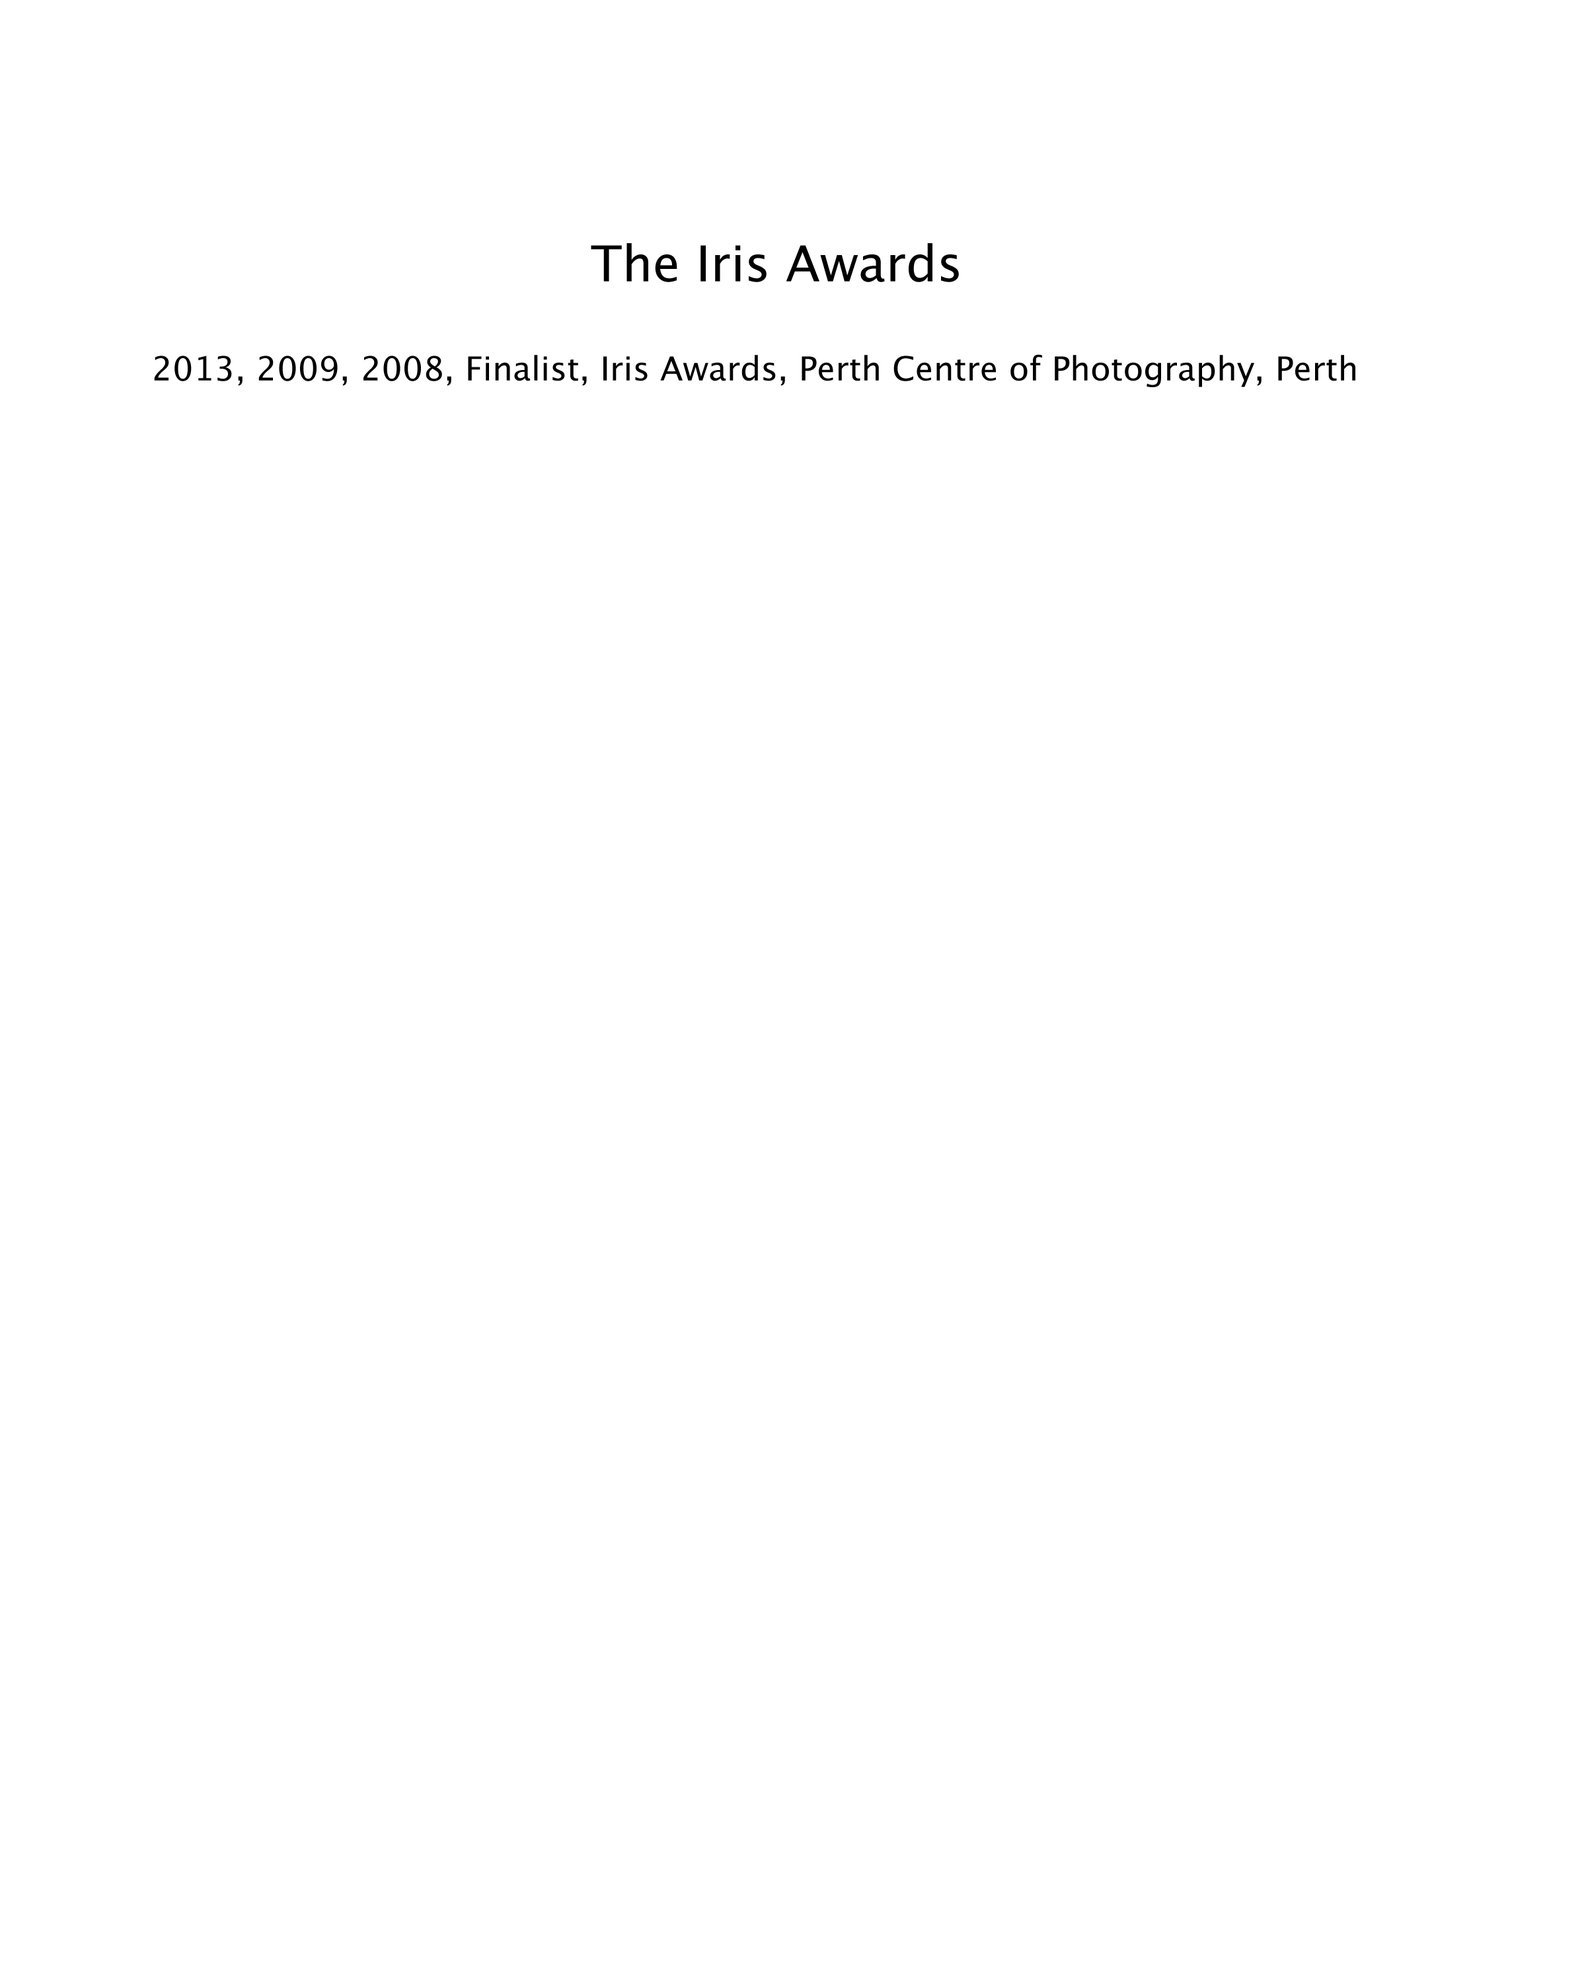 the iris awards.jpg